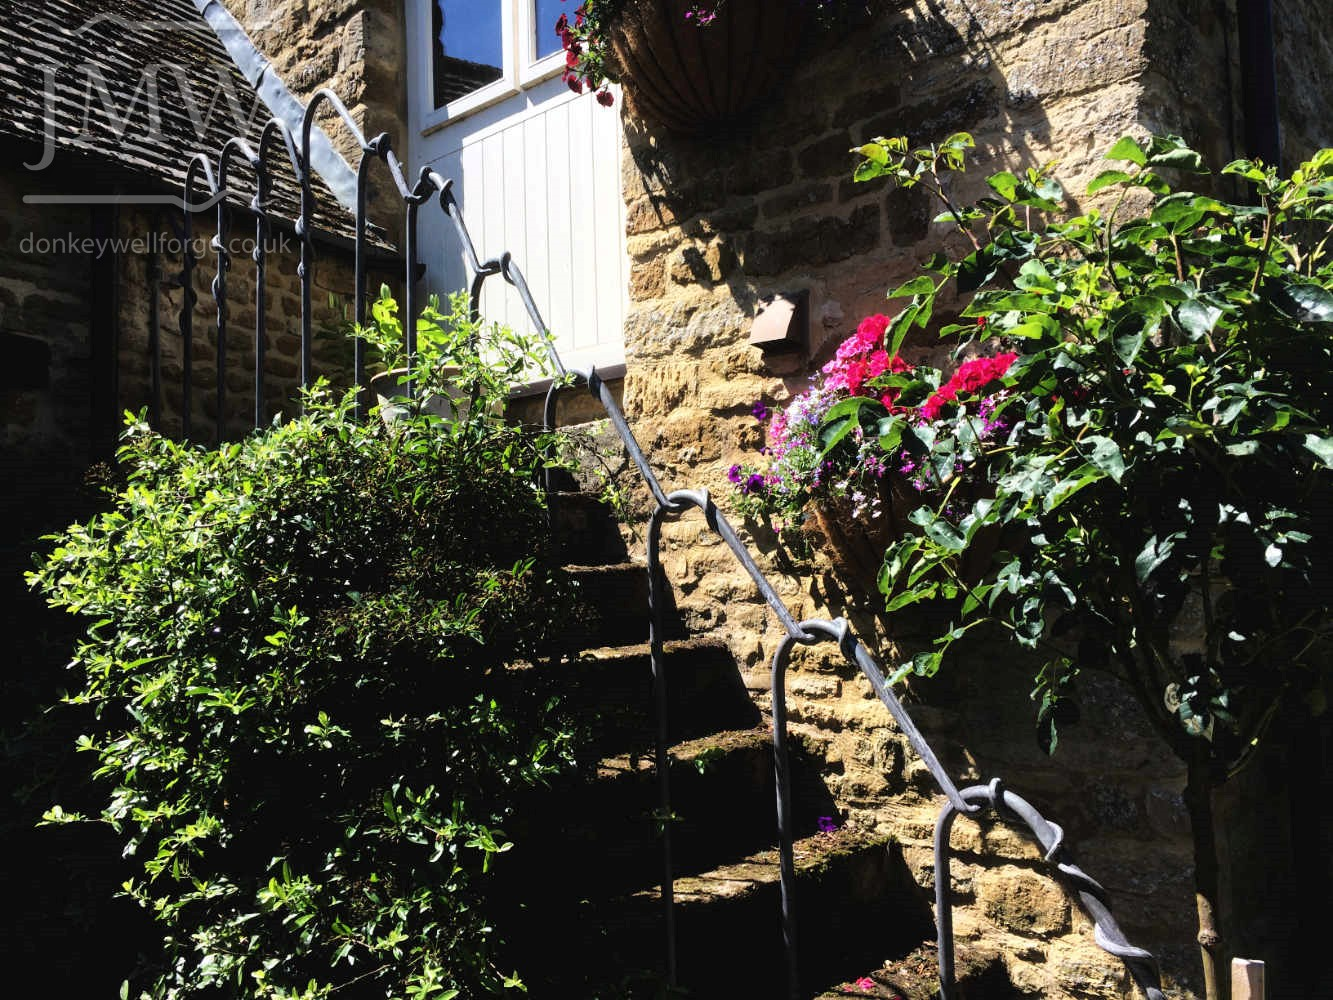 forged-ornate-stair-railing-bespoke-zinc-lead-finish-iron-garden-donkeywell